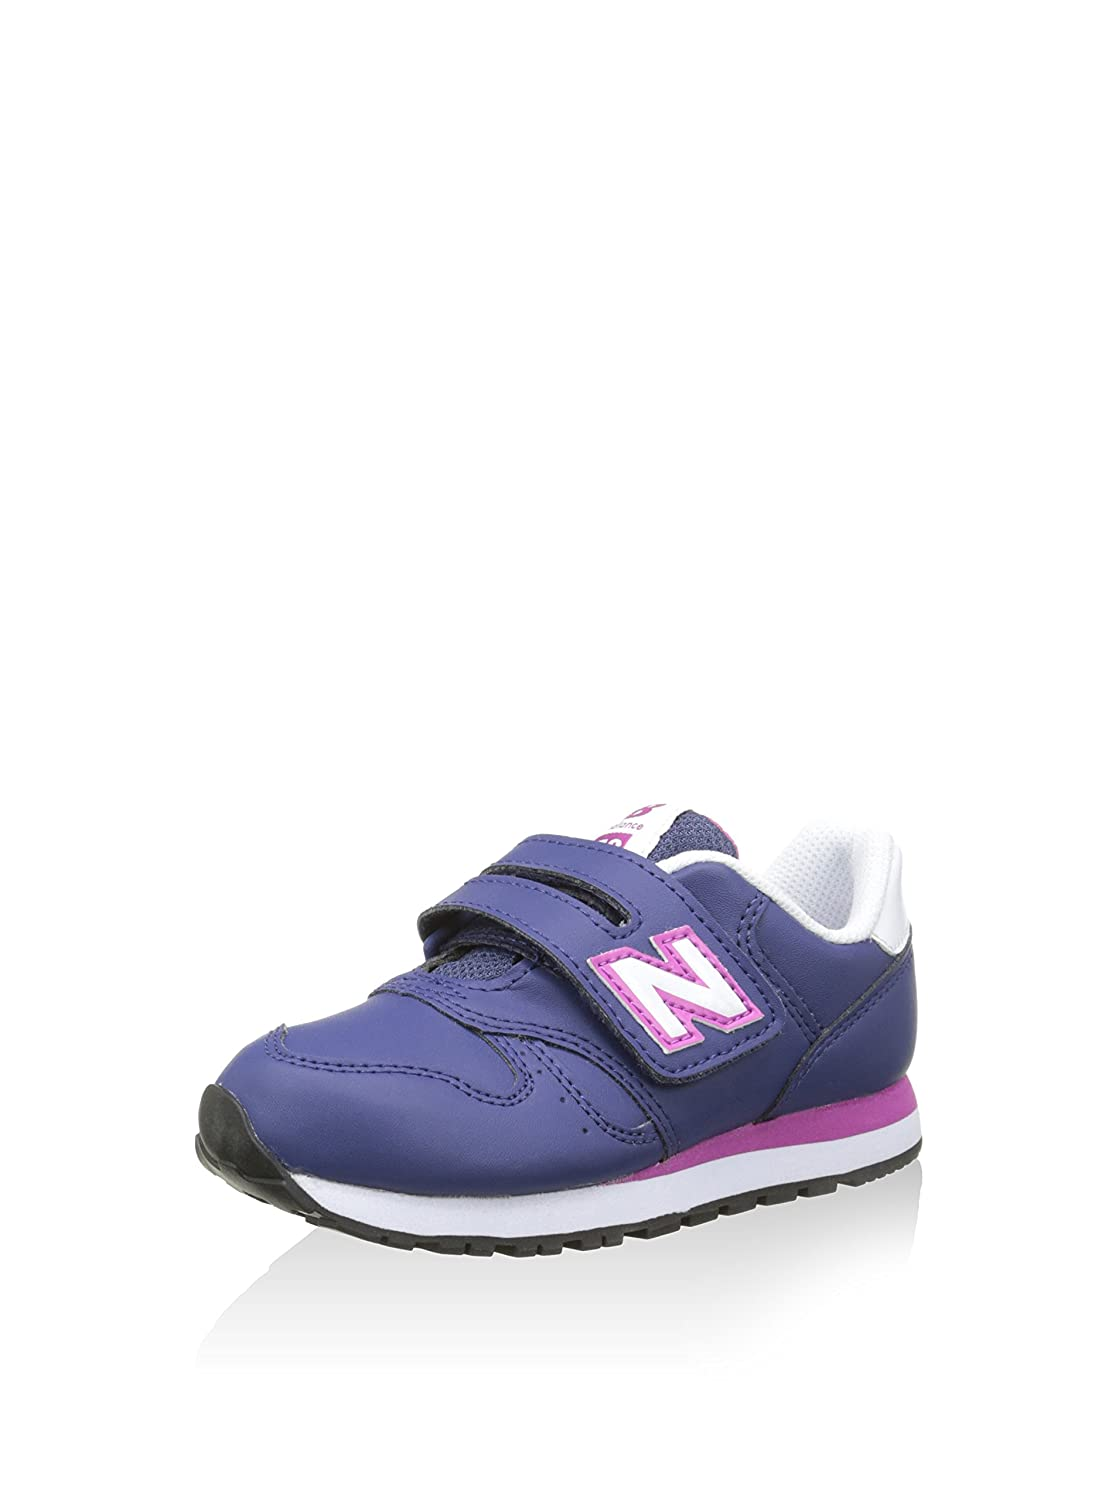 New Balance Unisex-Kinder Jr 373 Turnschuhe